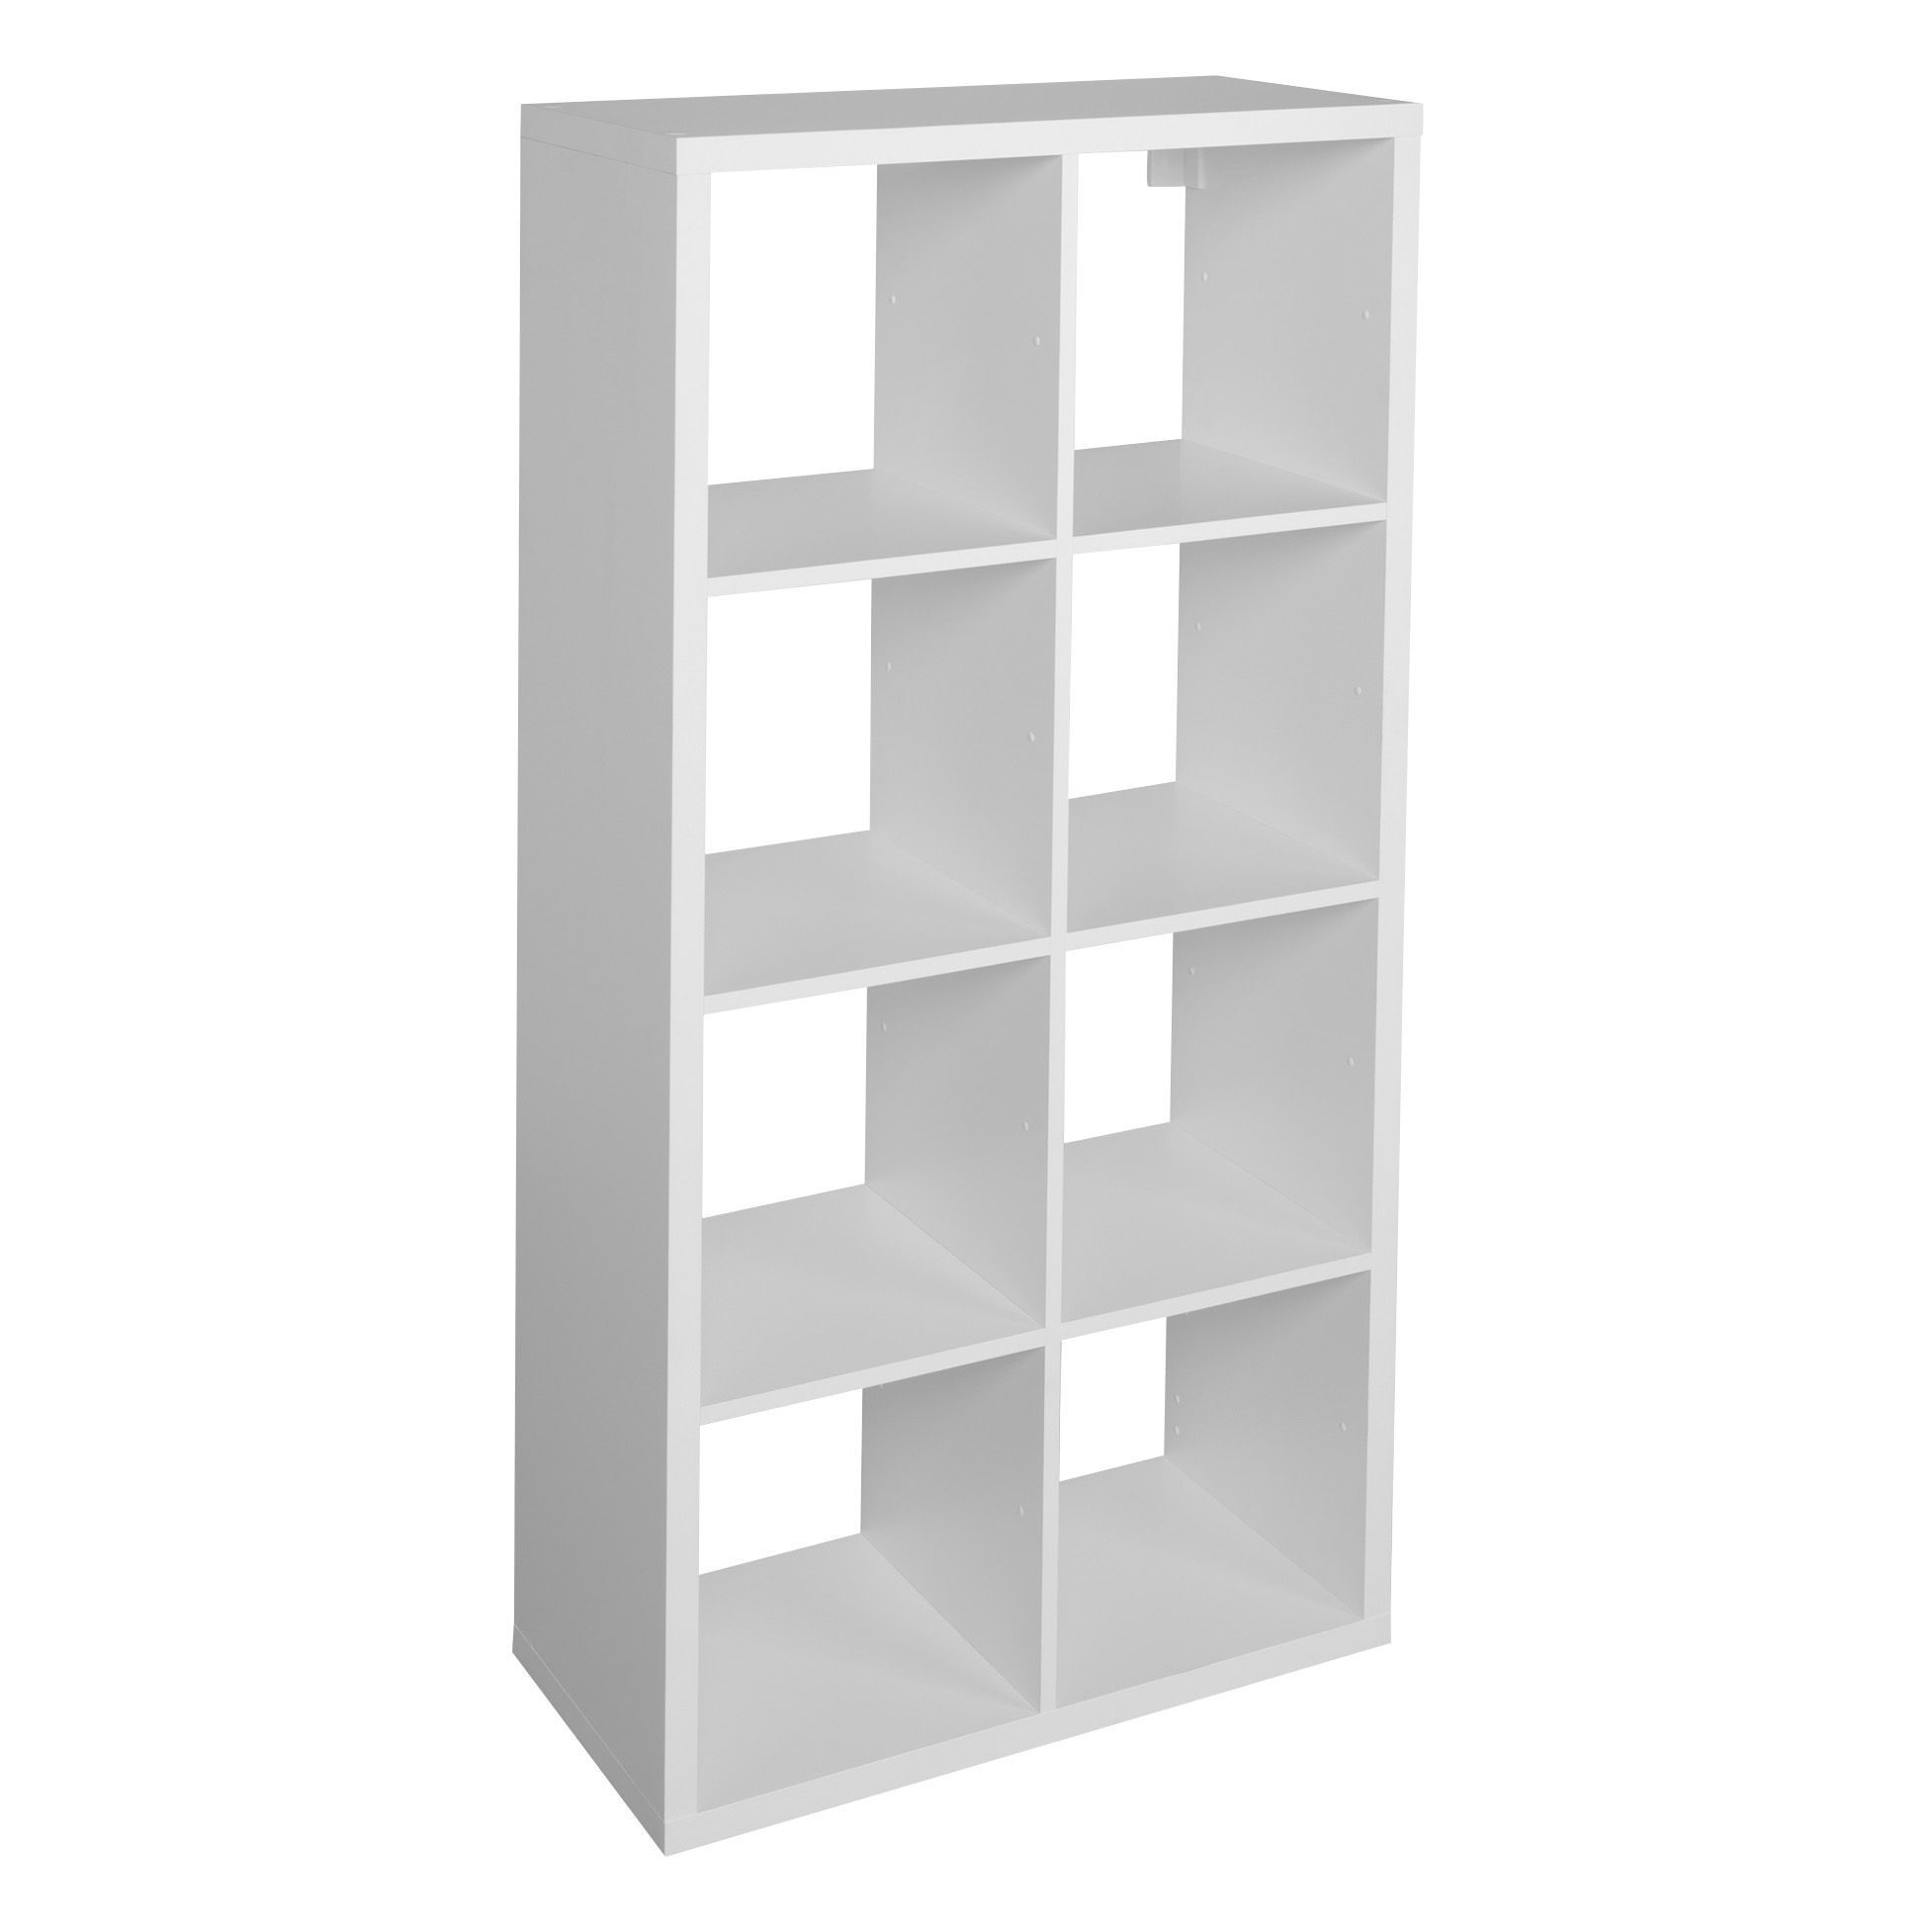 Form mixxit white 8 cube shelving unit h 1420mm w 740mm for Bathroom storage ideas b q